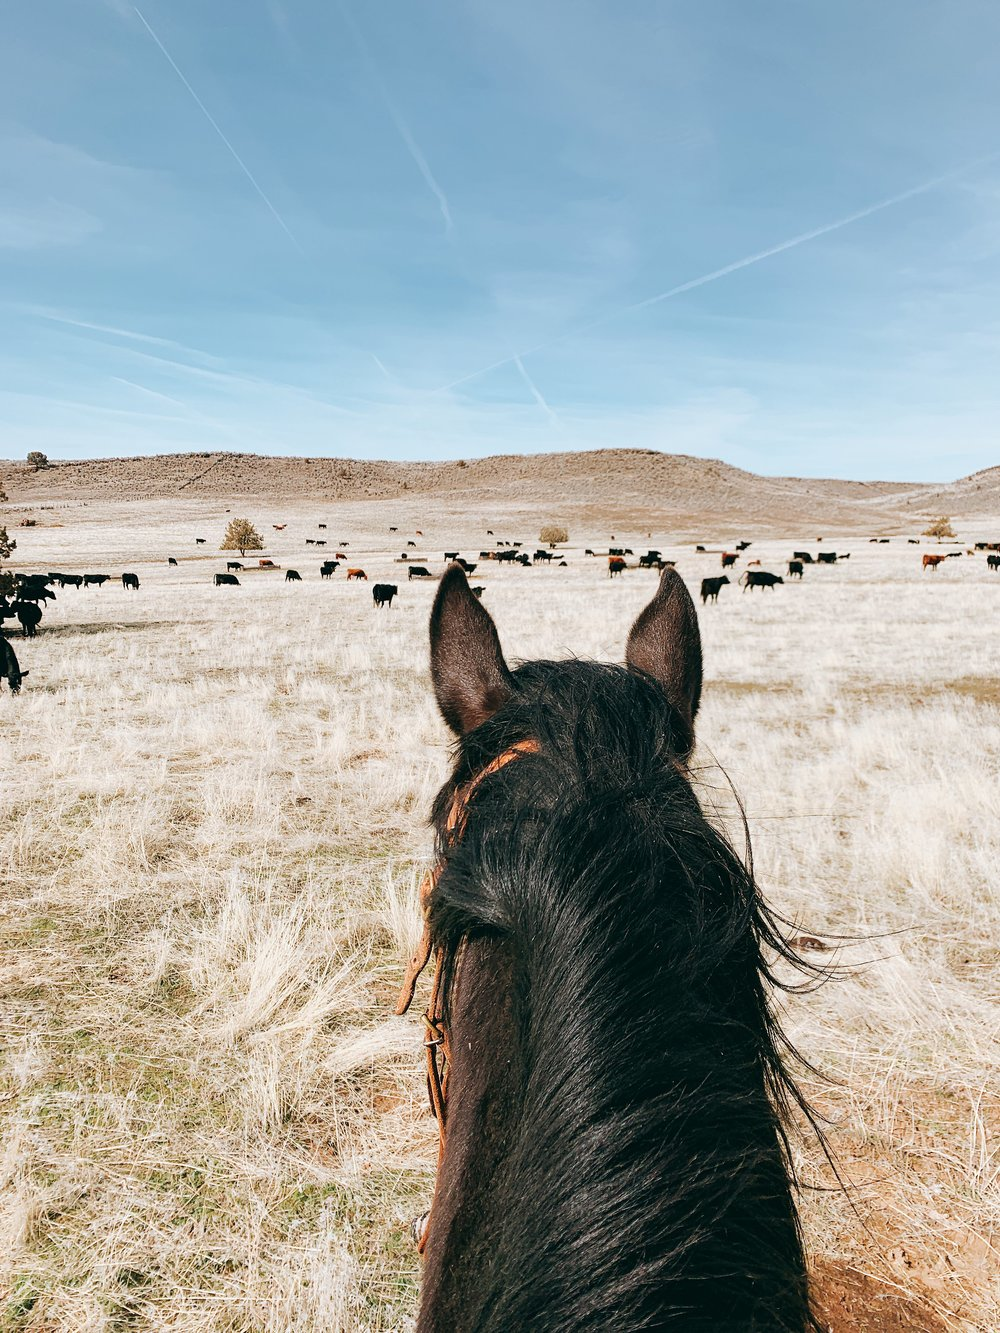 Cattle Ranch in Northern California - western lifestyle and authentic farmhouse living | boxwoodavenue.com #horses #cattle #ranching #farmlife